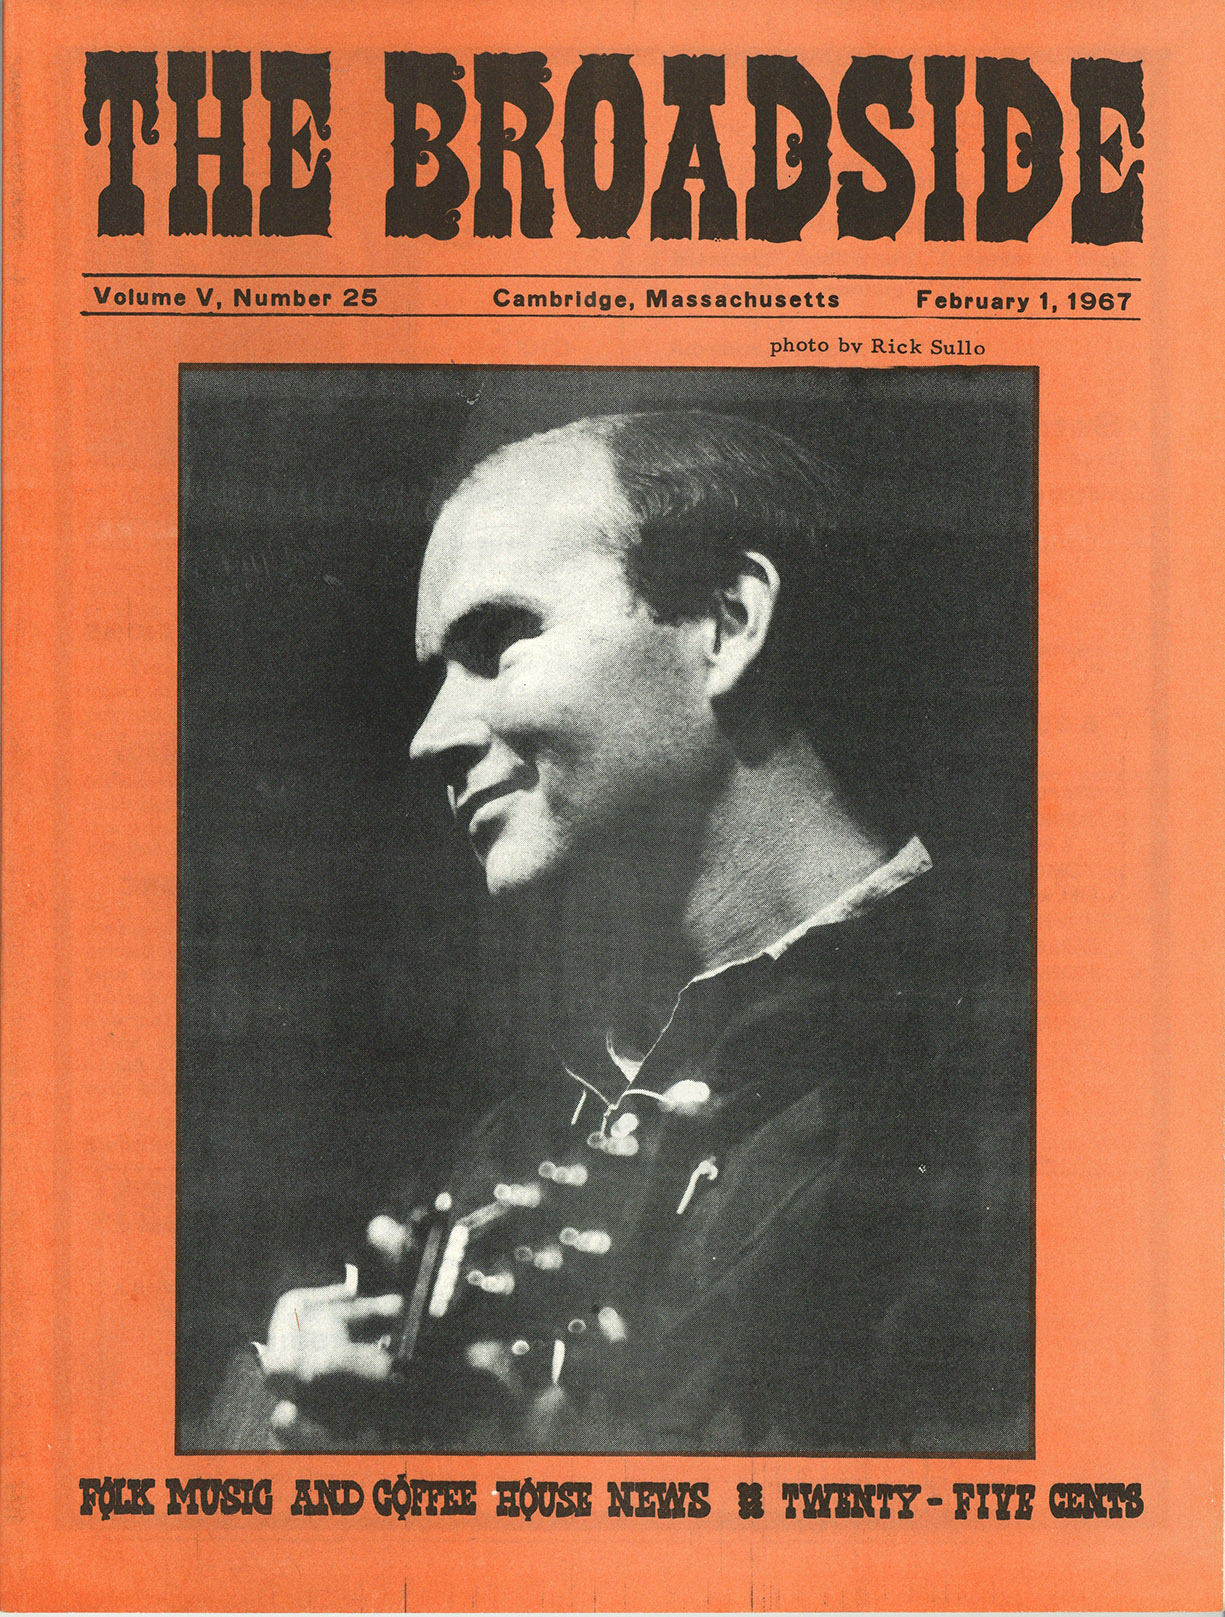 Depiction of Bill Keith on the cover of Broadside, Feb. 1, 1967